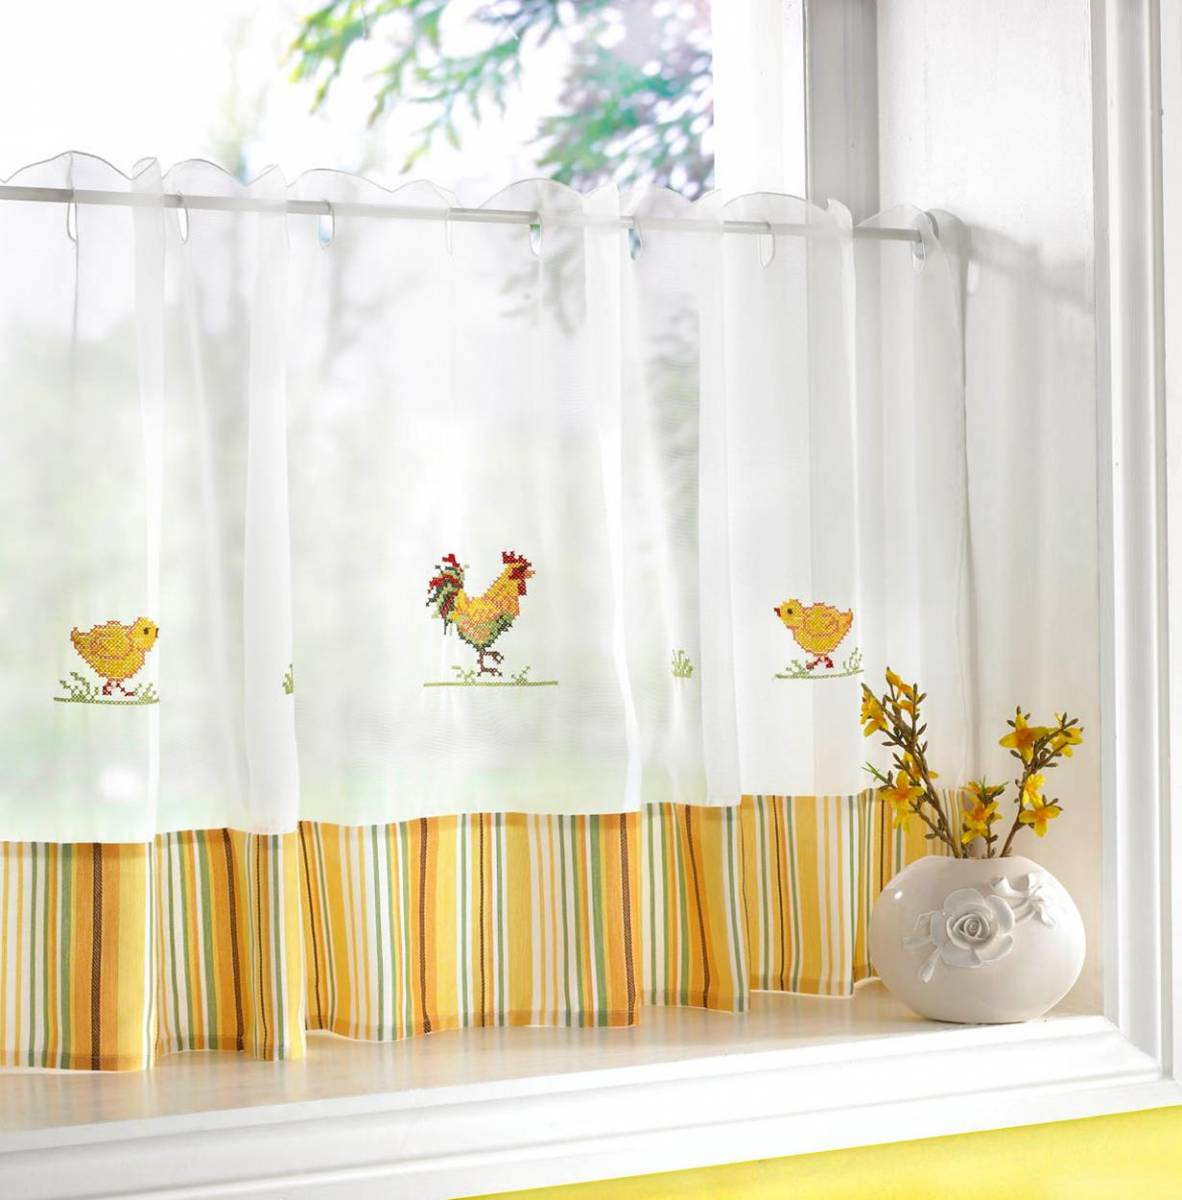 cafe curtains for kitchen backsplash tiles chickens curtain width 60 net 2